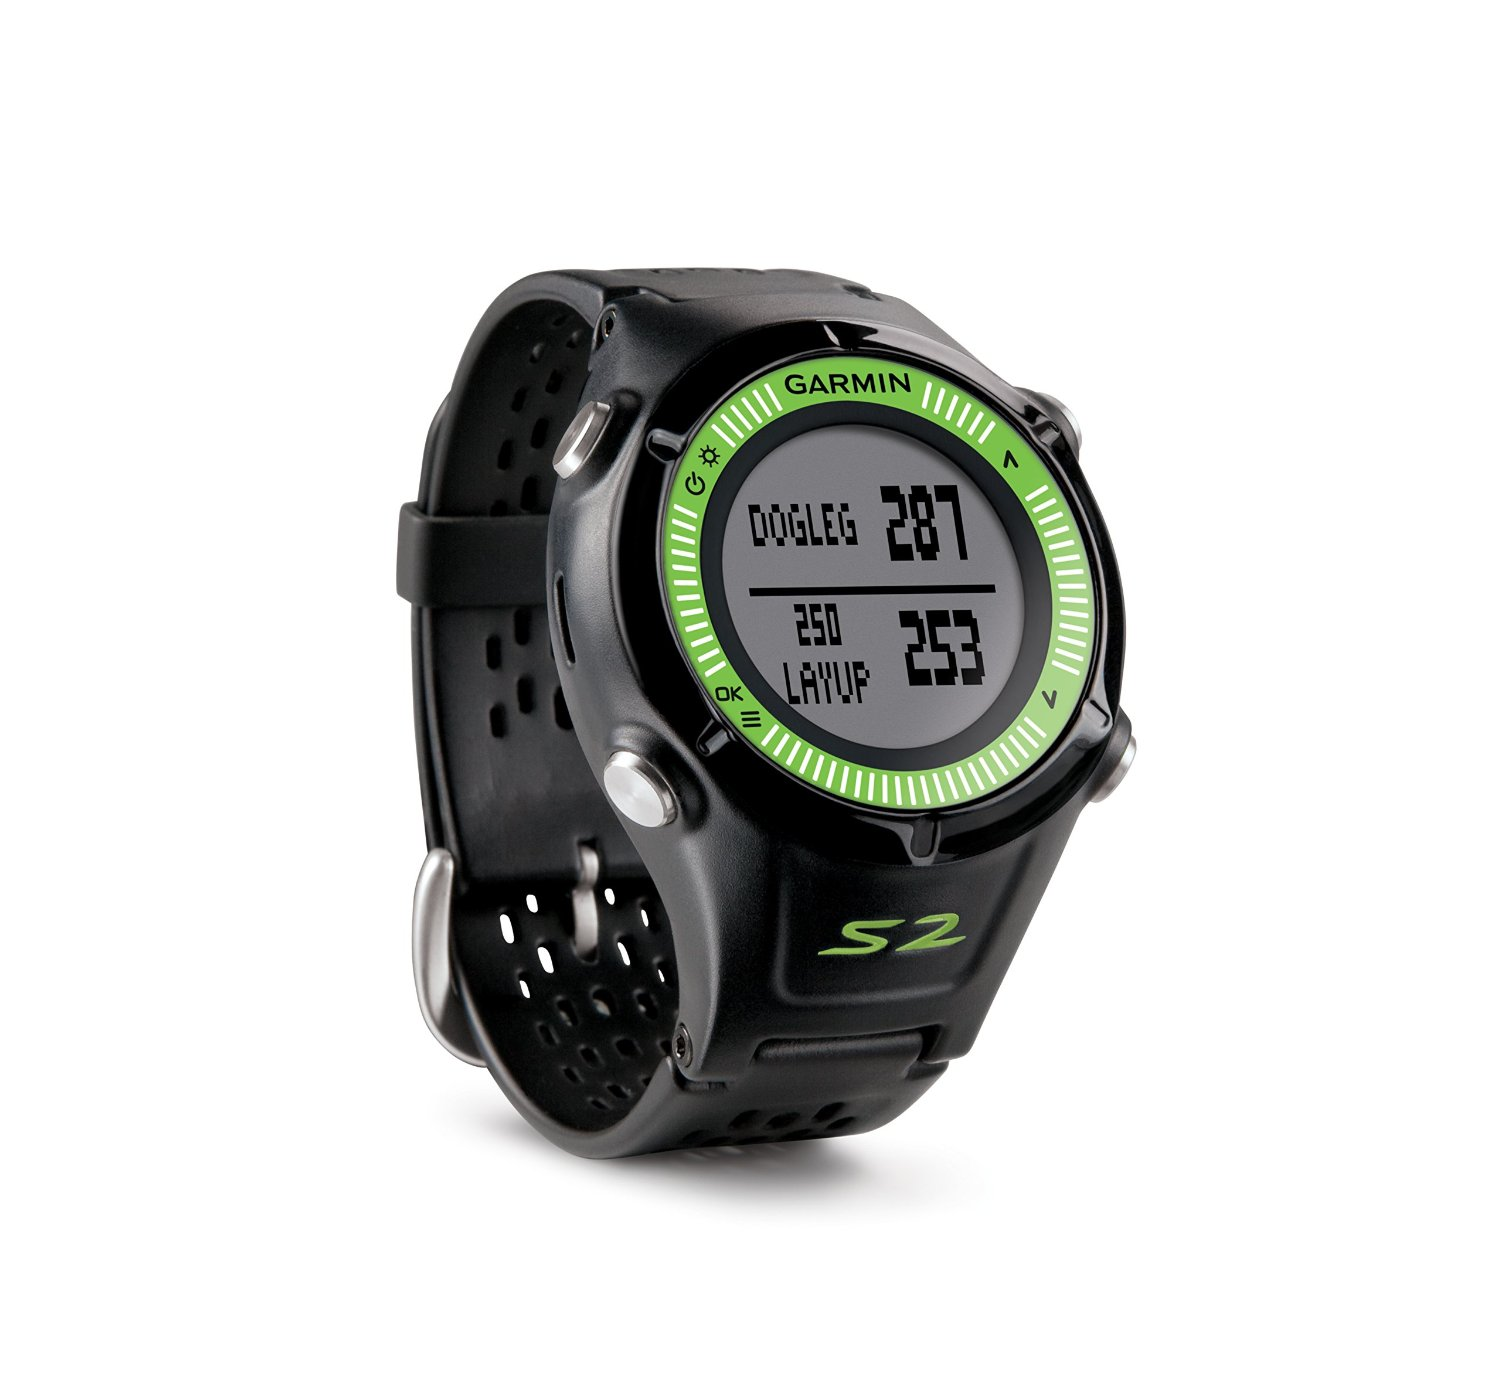 Garmin s1 approach golf gps rangefinder watch black 7400 preloaded golf courses sustuu for Watches garmin